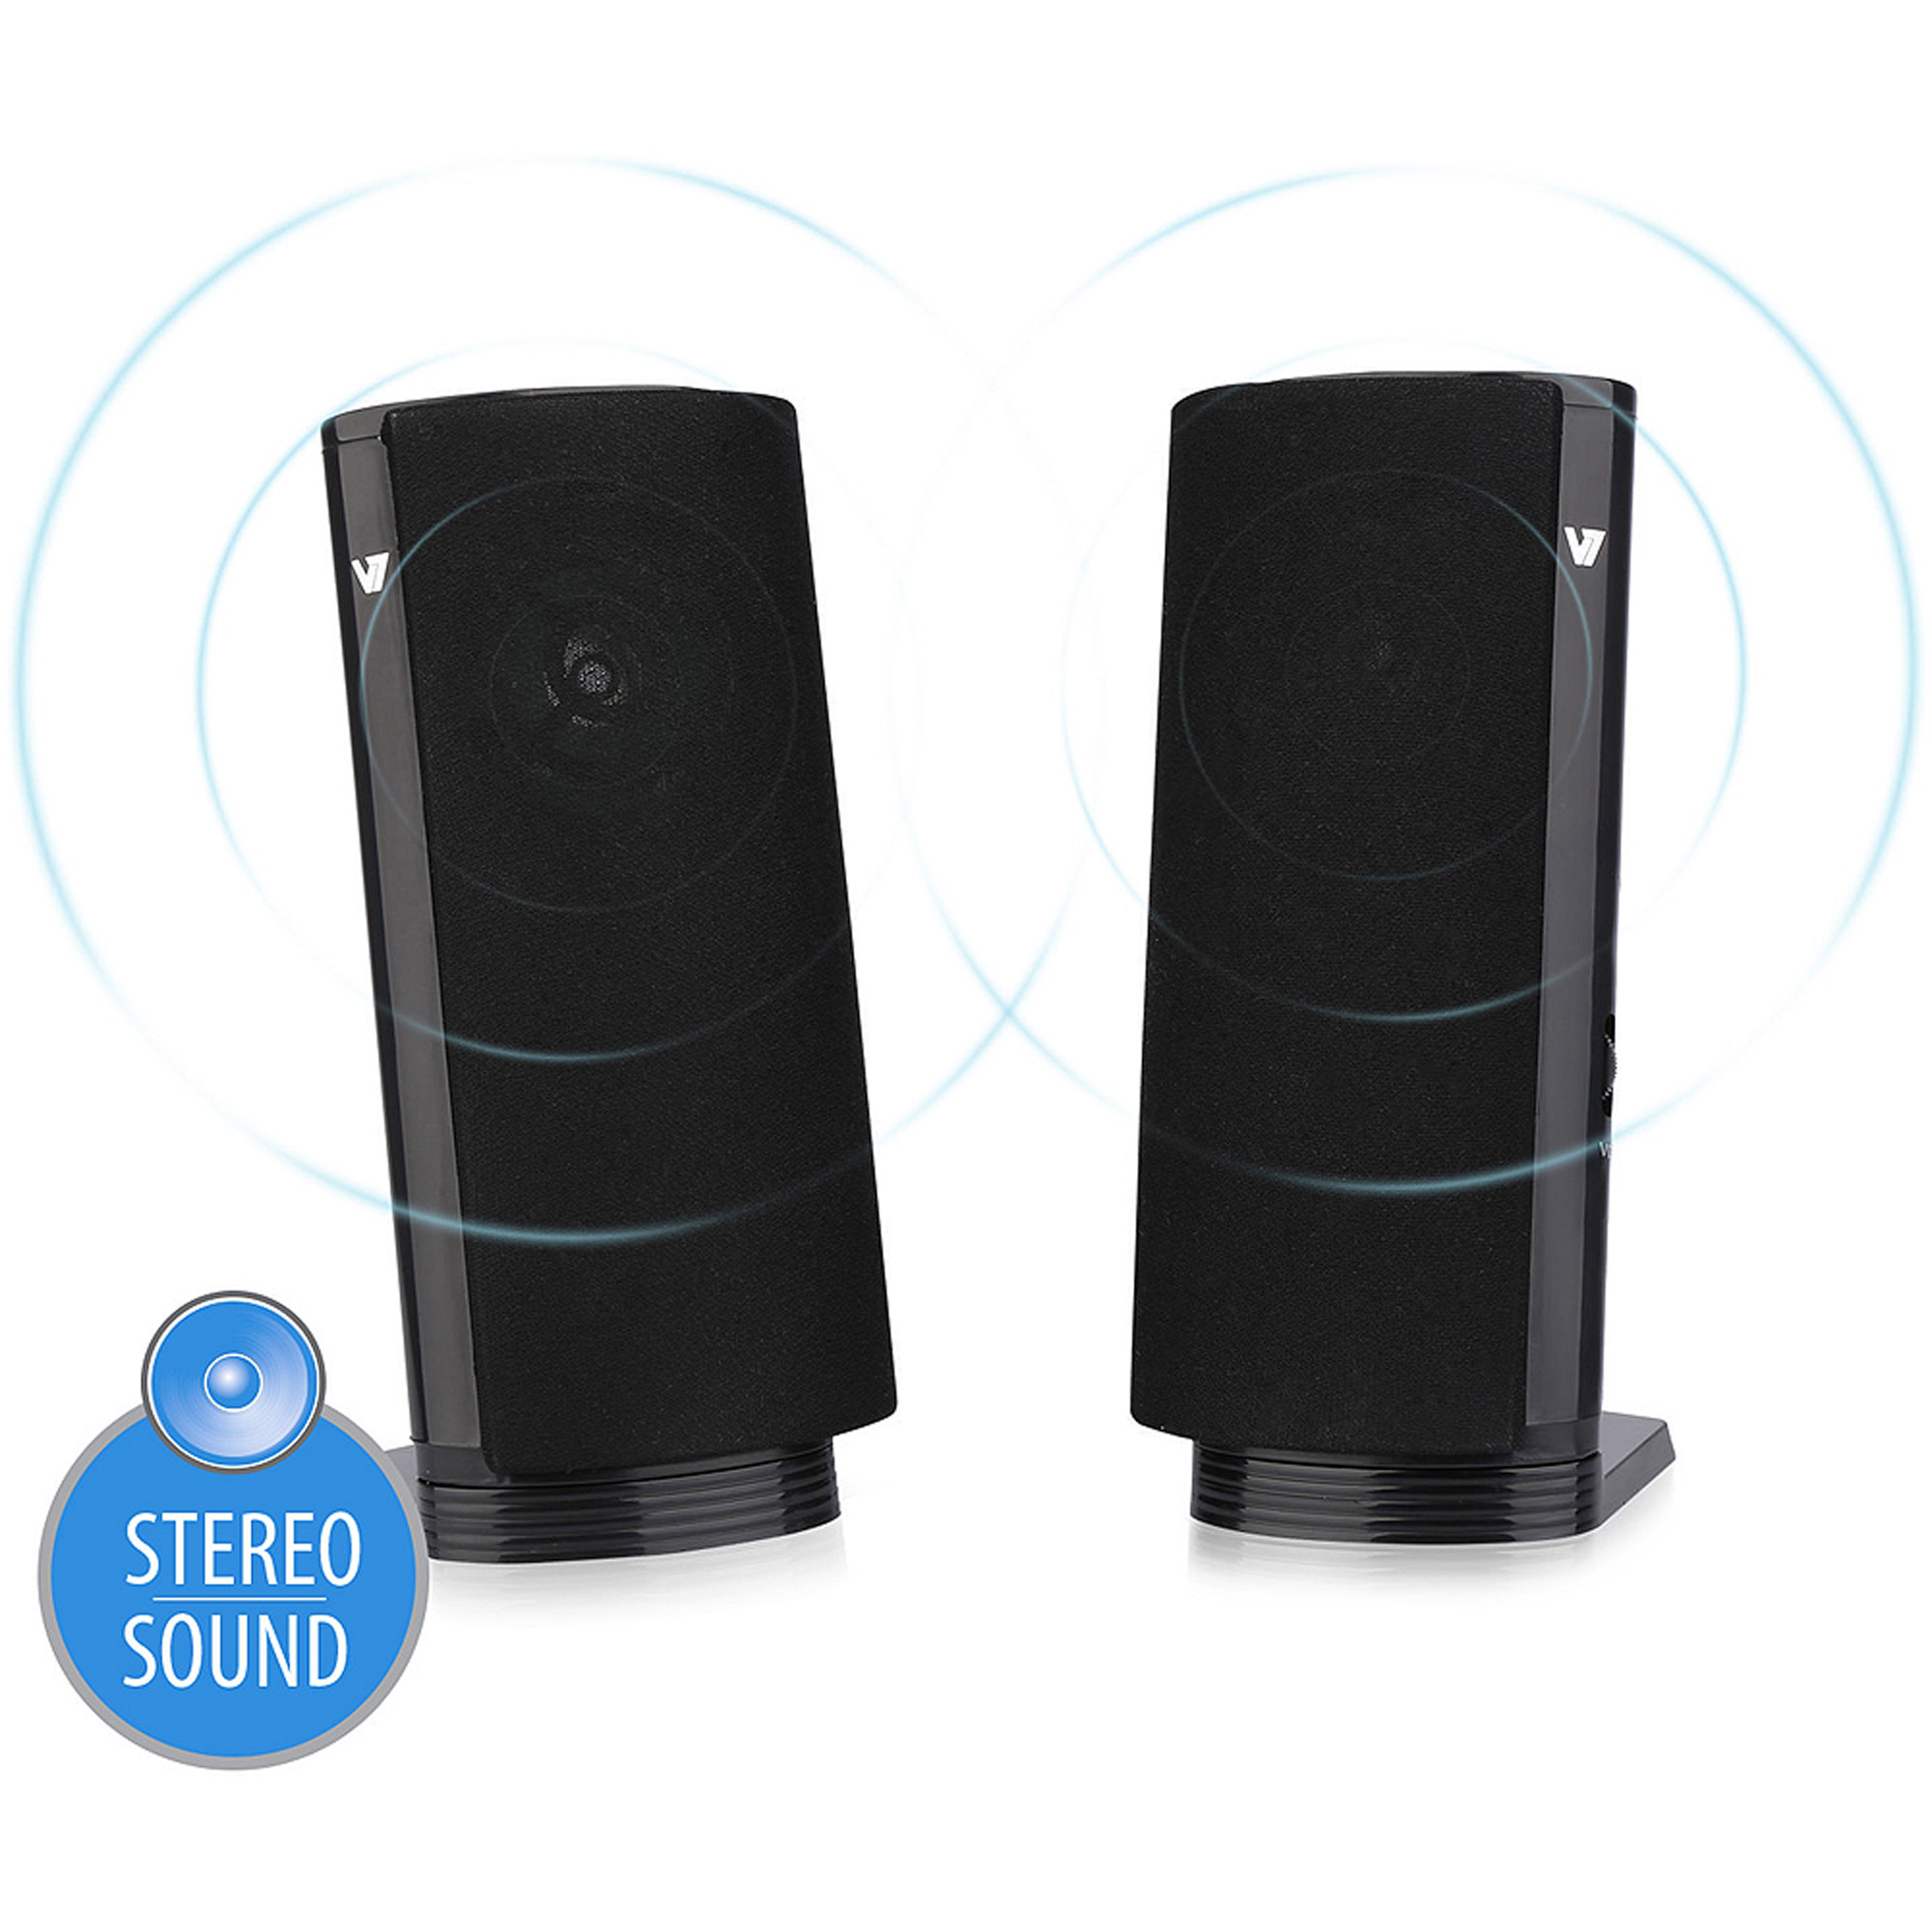 V7 USB-Powered Stereo 2.0 PC Speaker for Laptops and Desktops